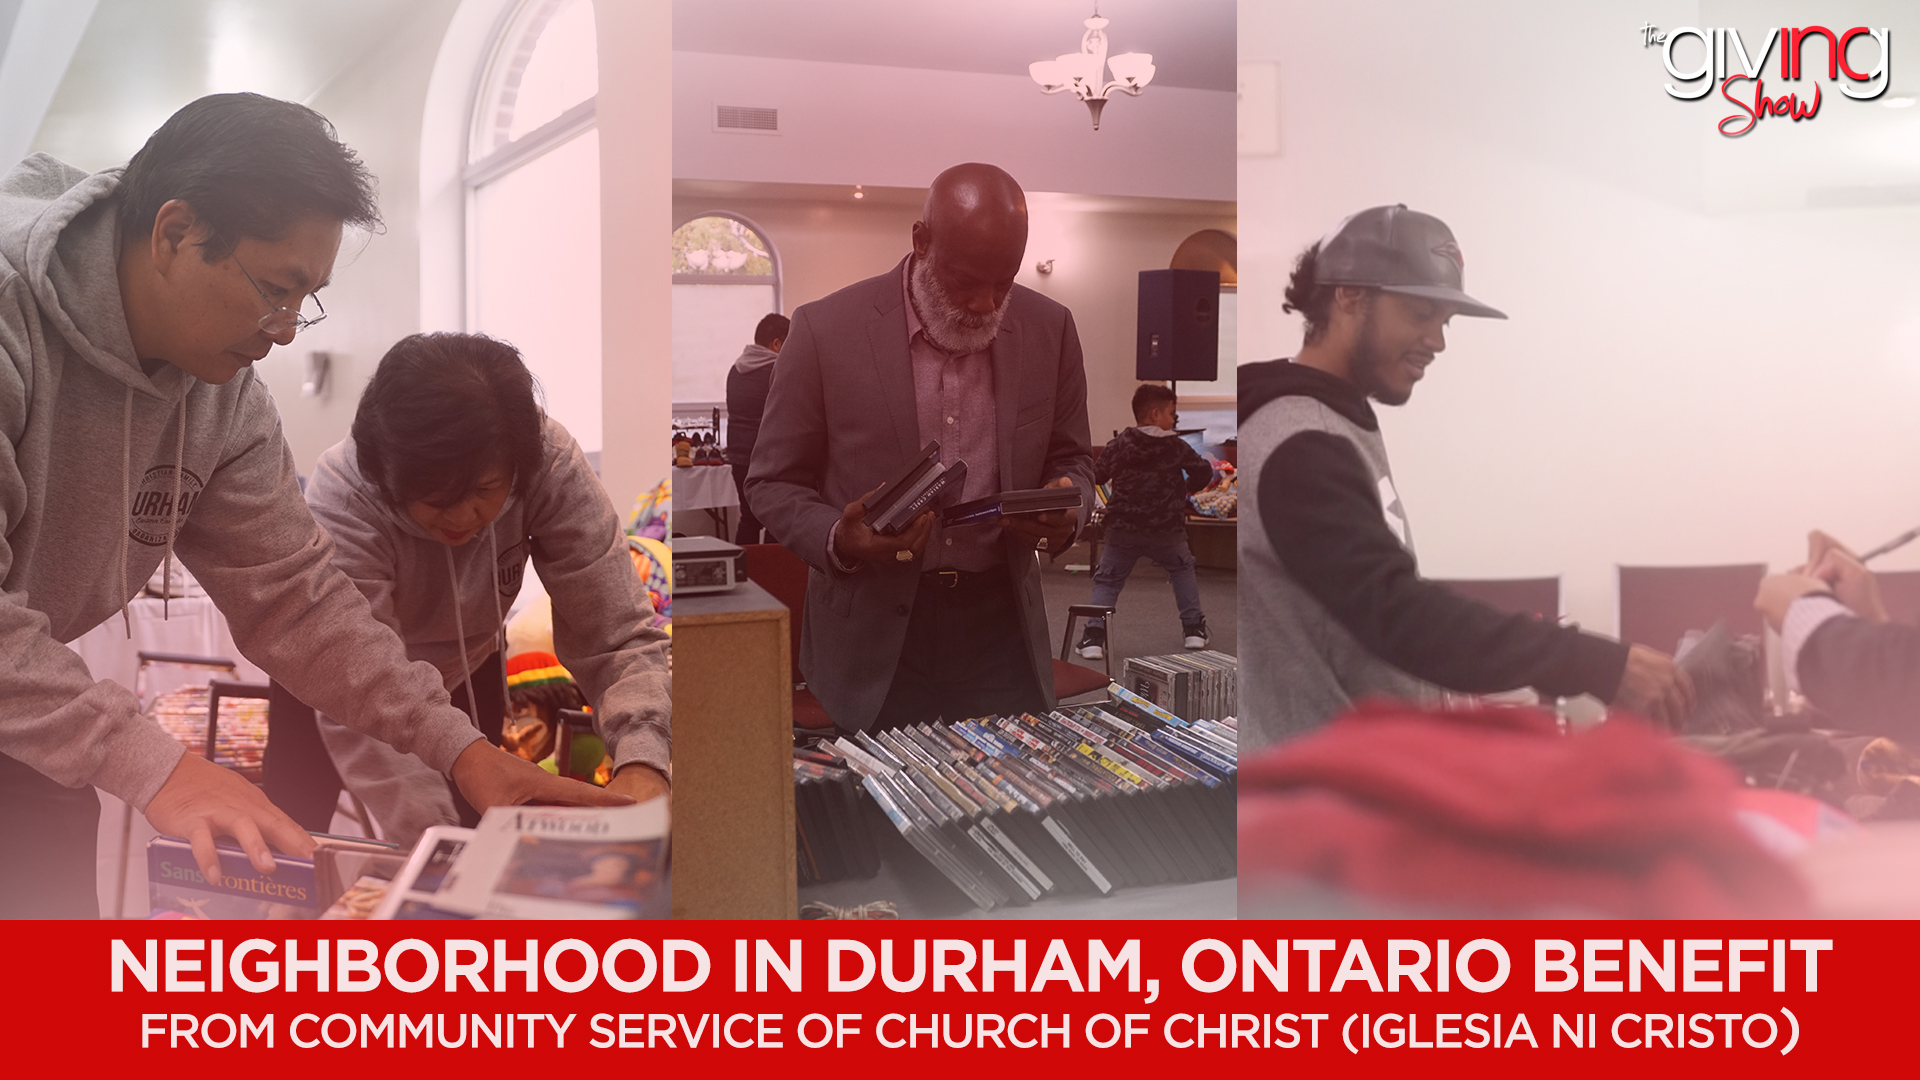 Neighborhood in Durham, Ontario Benefit from Community Service of Church Of Christ (Iglesia Ni Cristo)